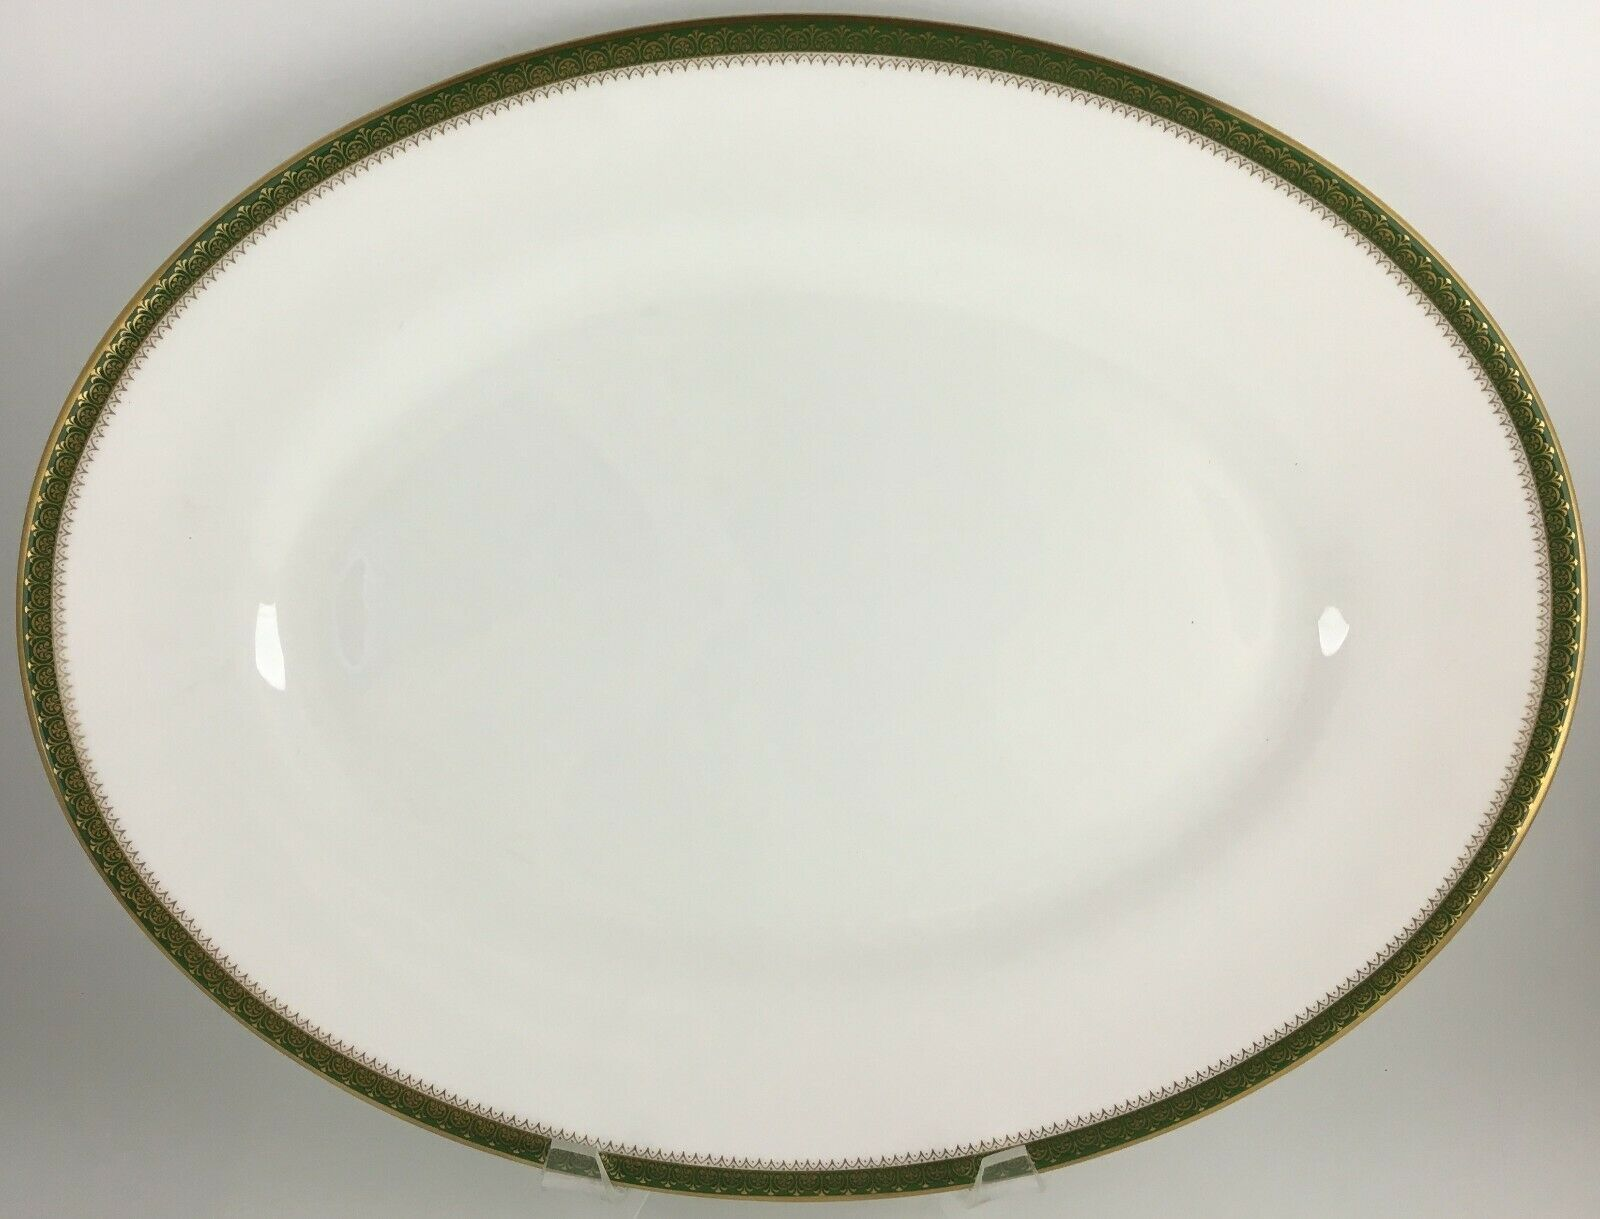 Primary image for Wedgwood Chester Oval serving platter 15 3/8 ""